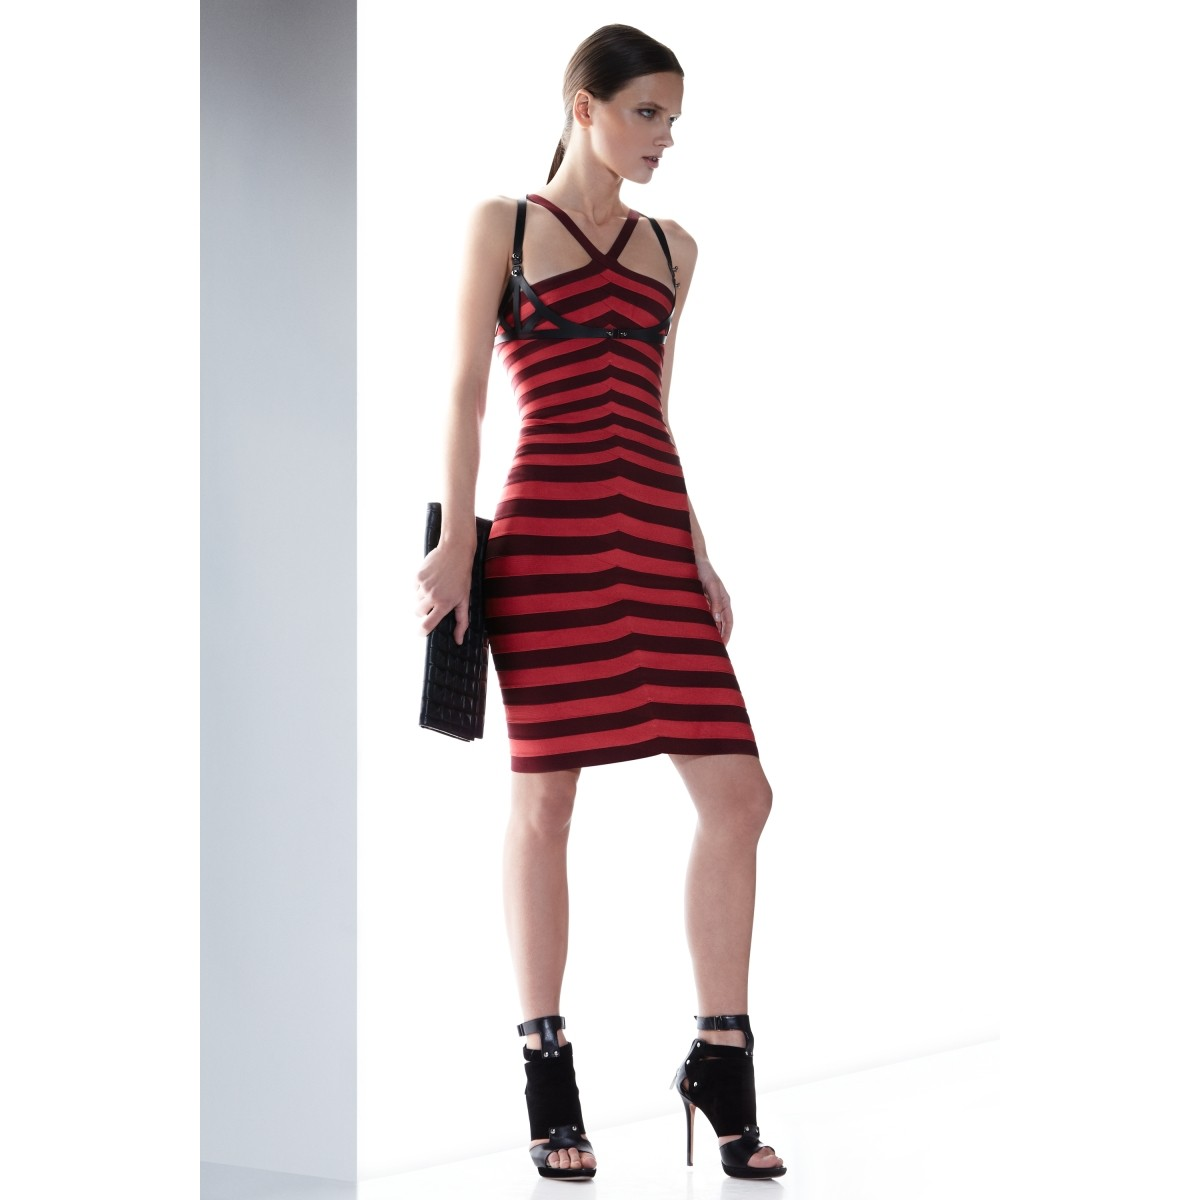 Herve Leger Red Zindzi Striped Bandage Dres